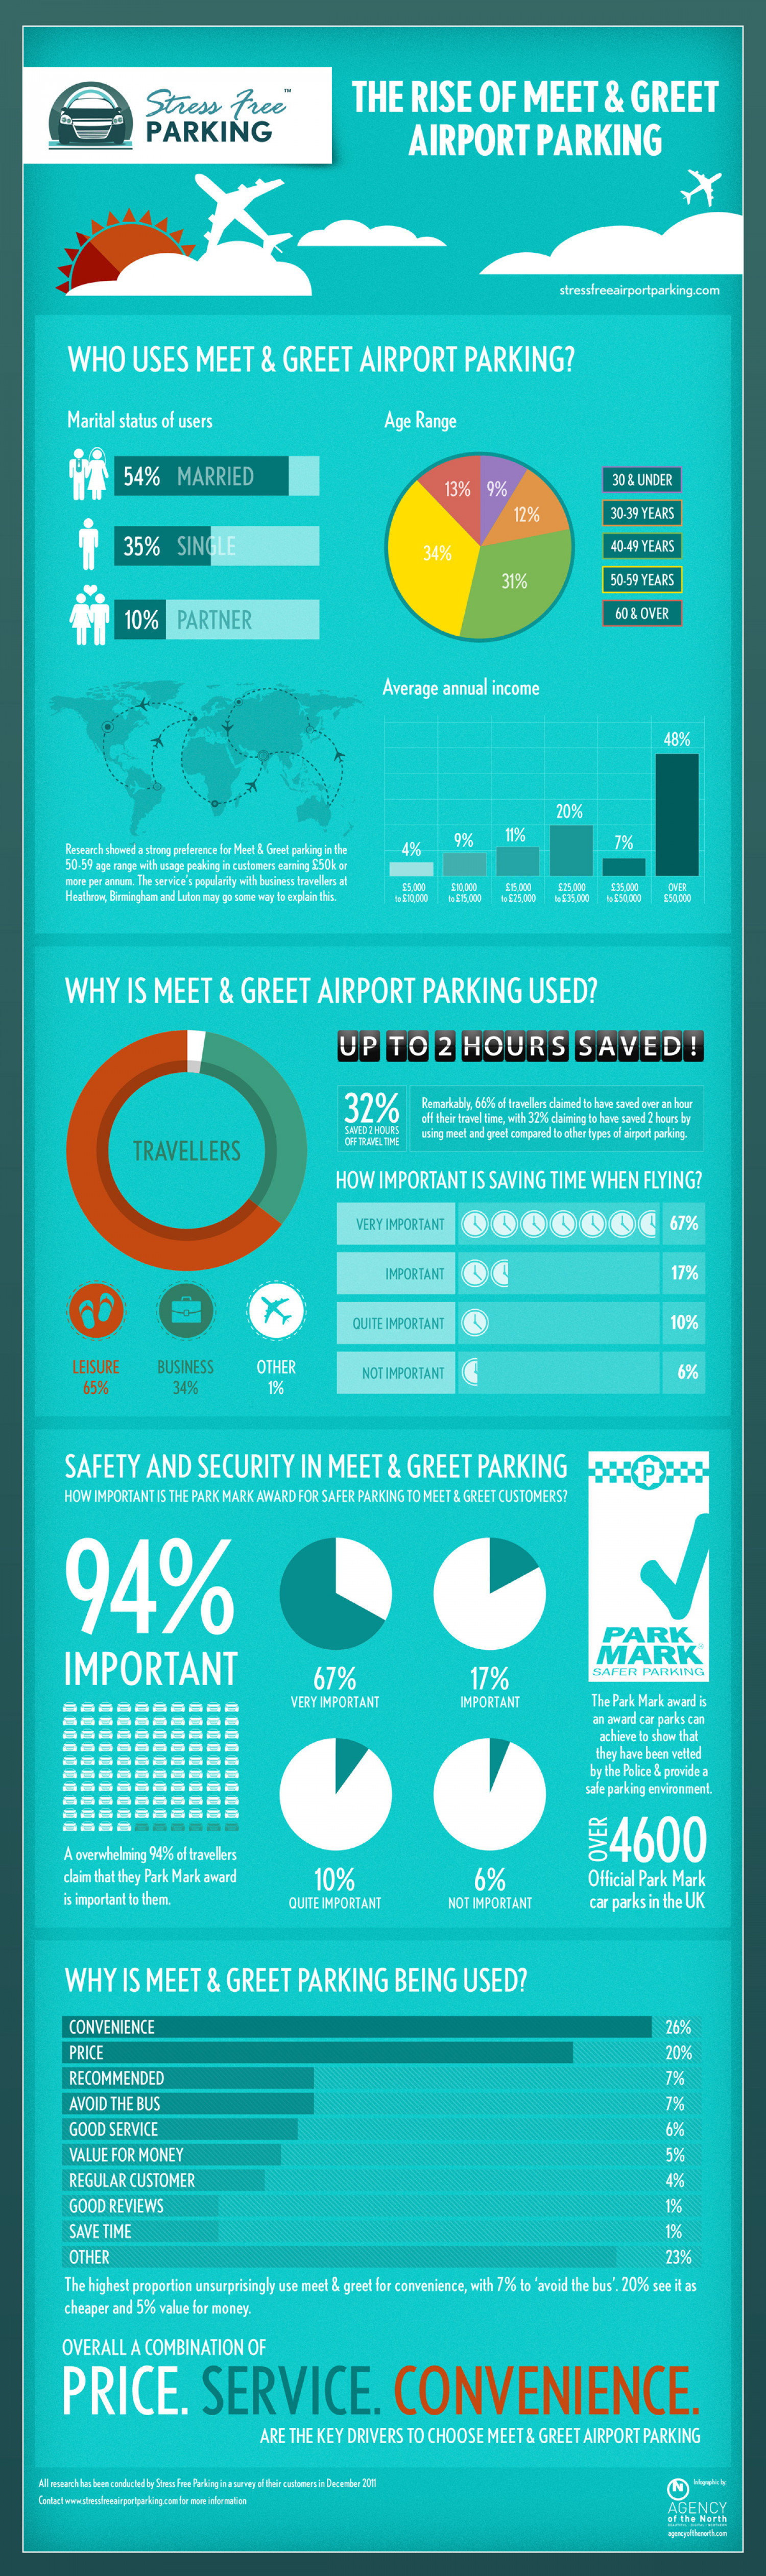 The rise of meet greet airport parking visual the rise of meet greet airport parking infographic kristyandbryce Image collections